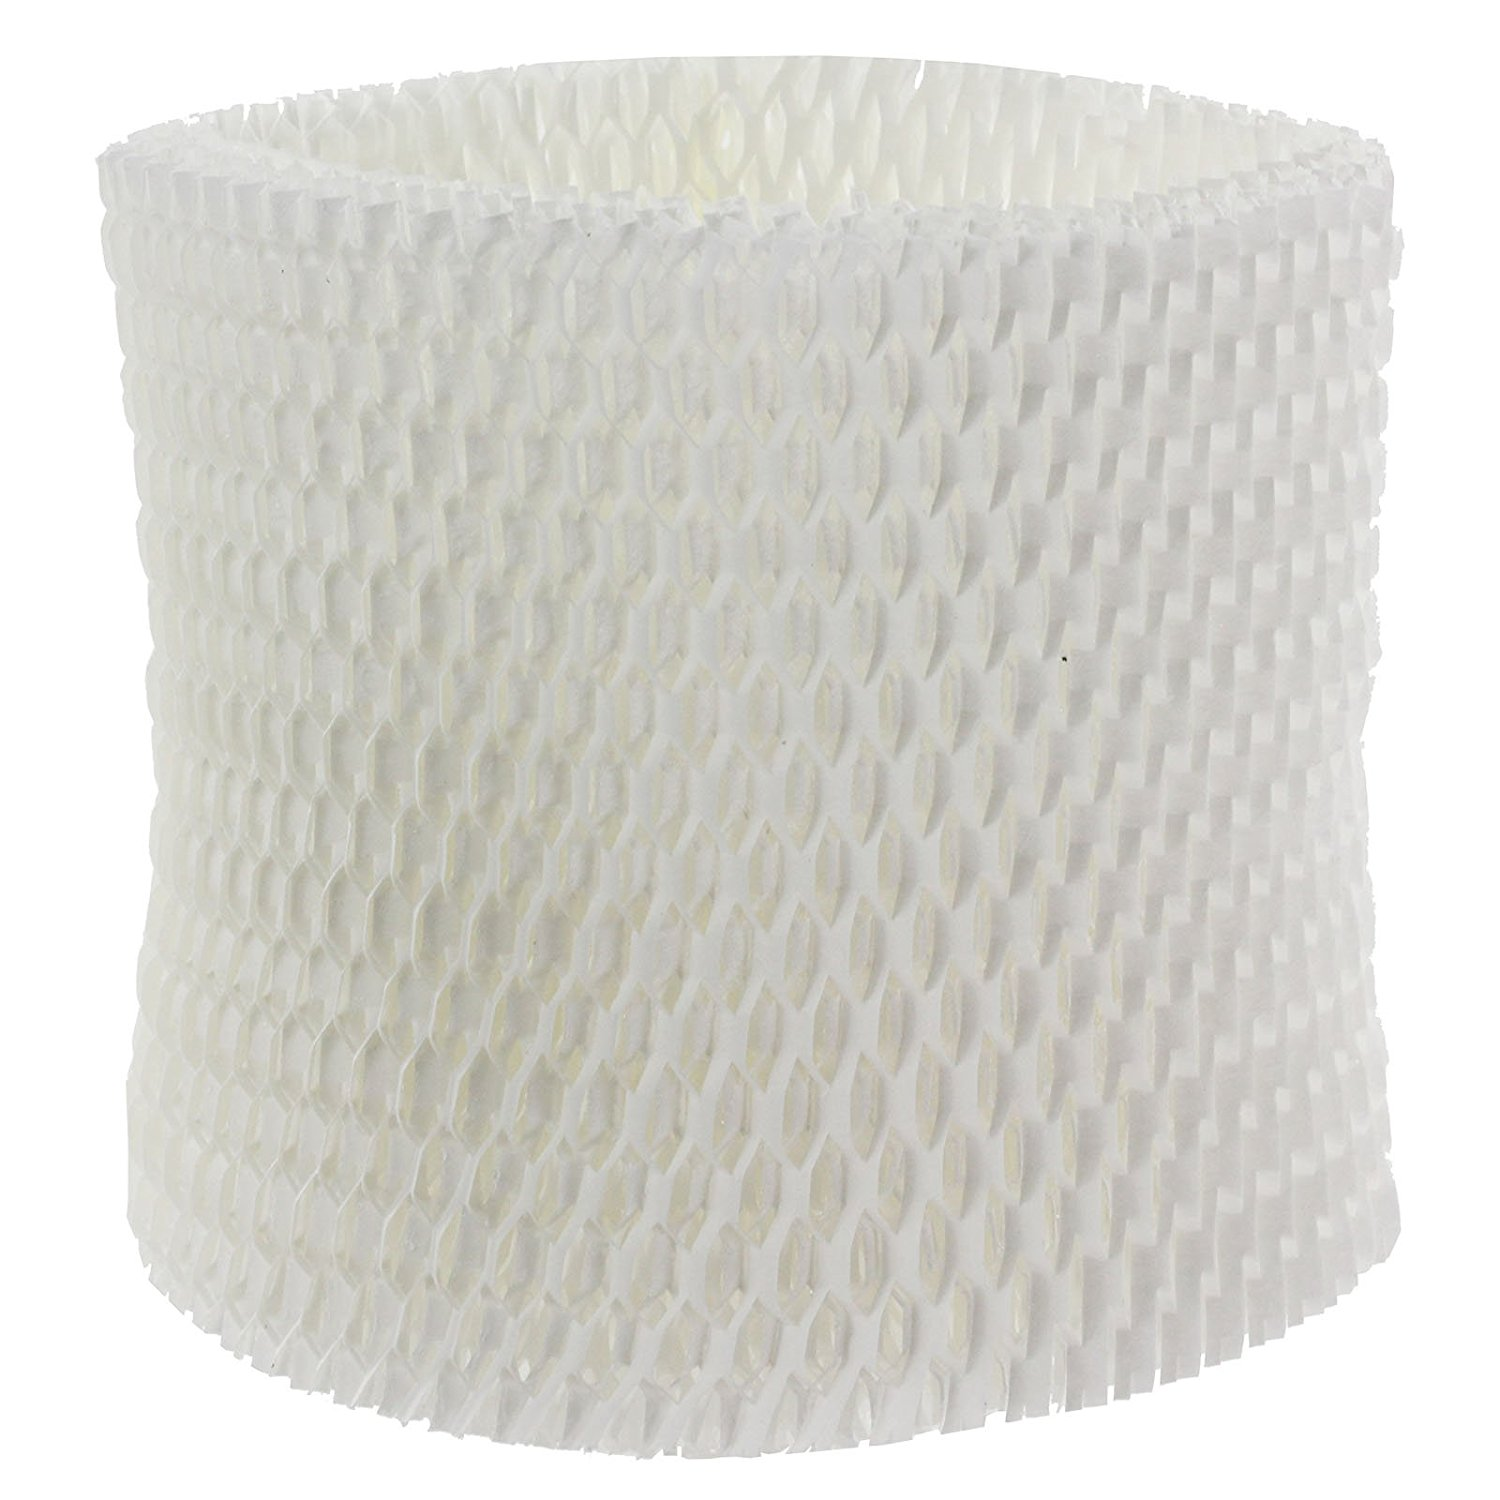 Honeywell Mist Humidifier Filter | 3000, 3000X & EH3100E | Vicks V3100 & VH3900 | NEW